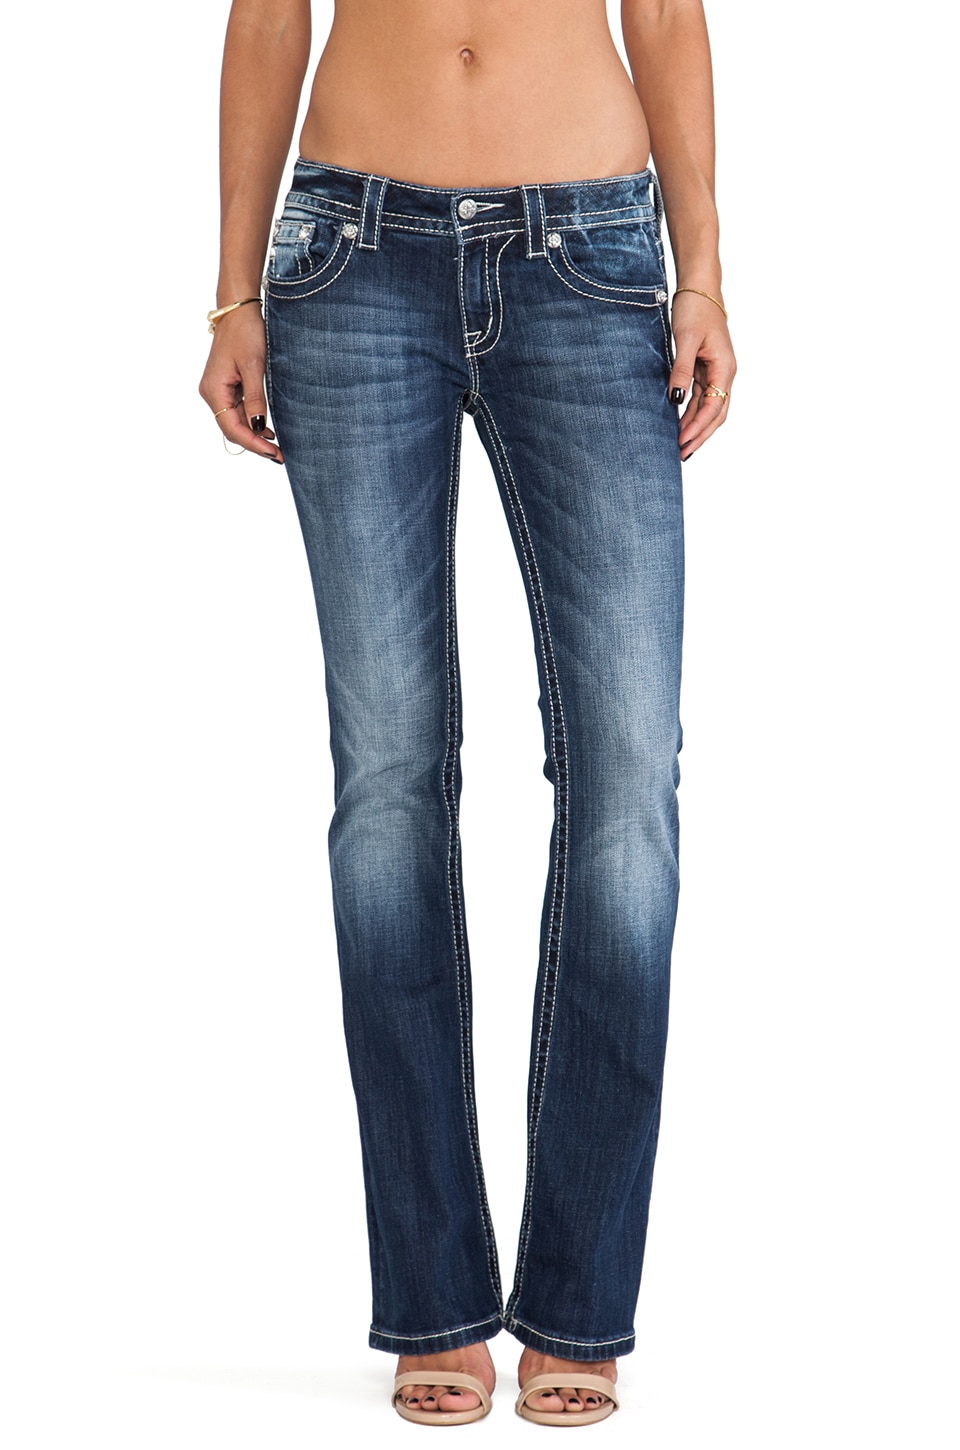 Miss Me Jeans Boot Cut in MK 272